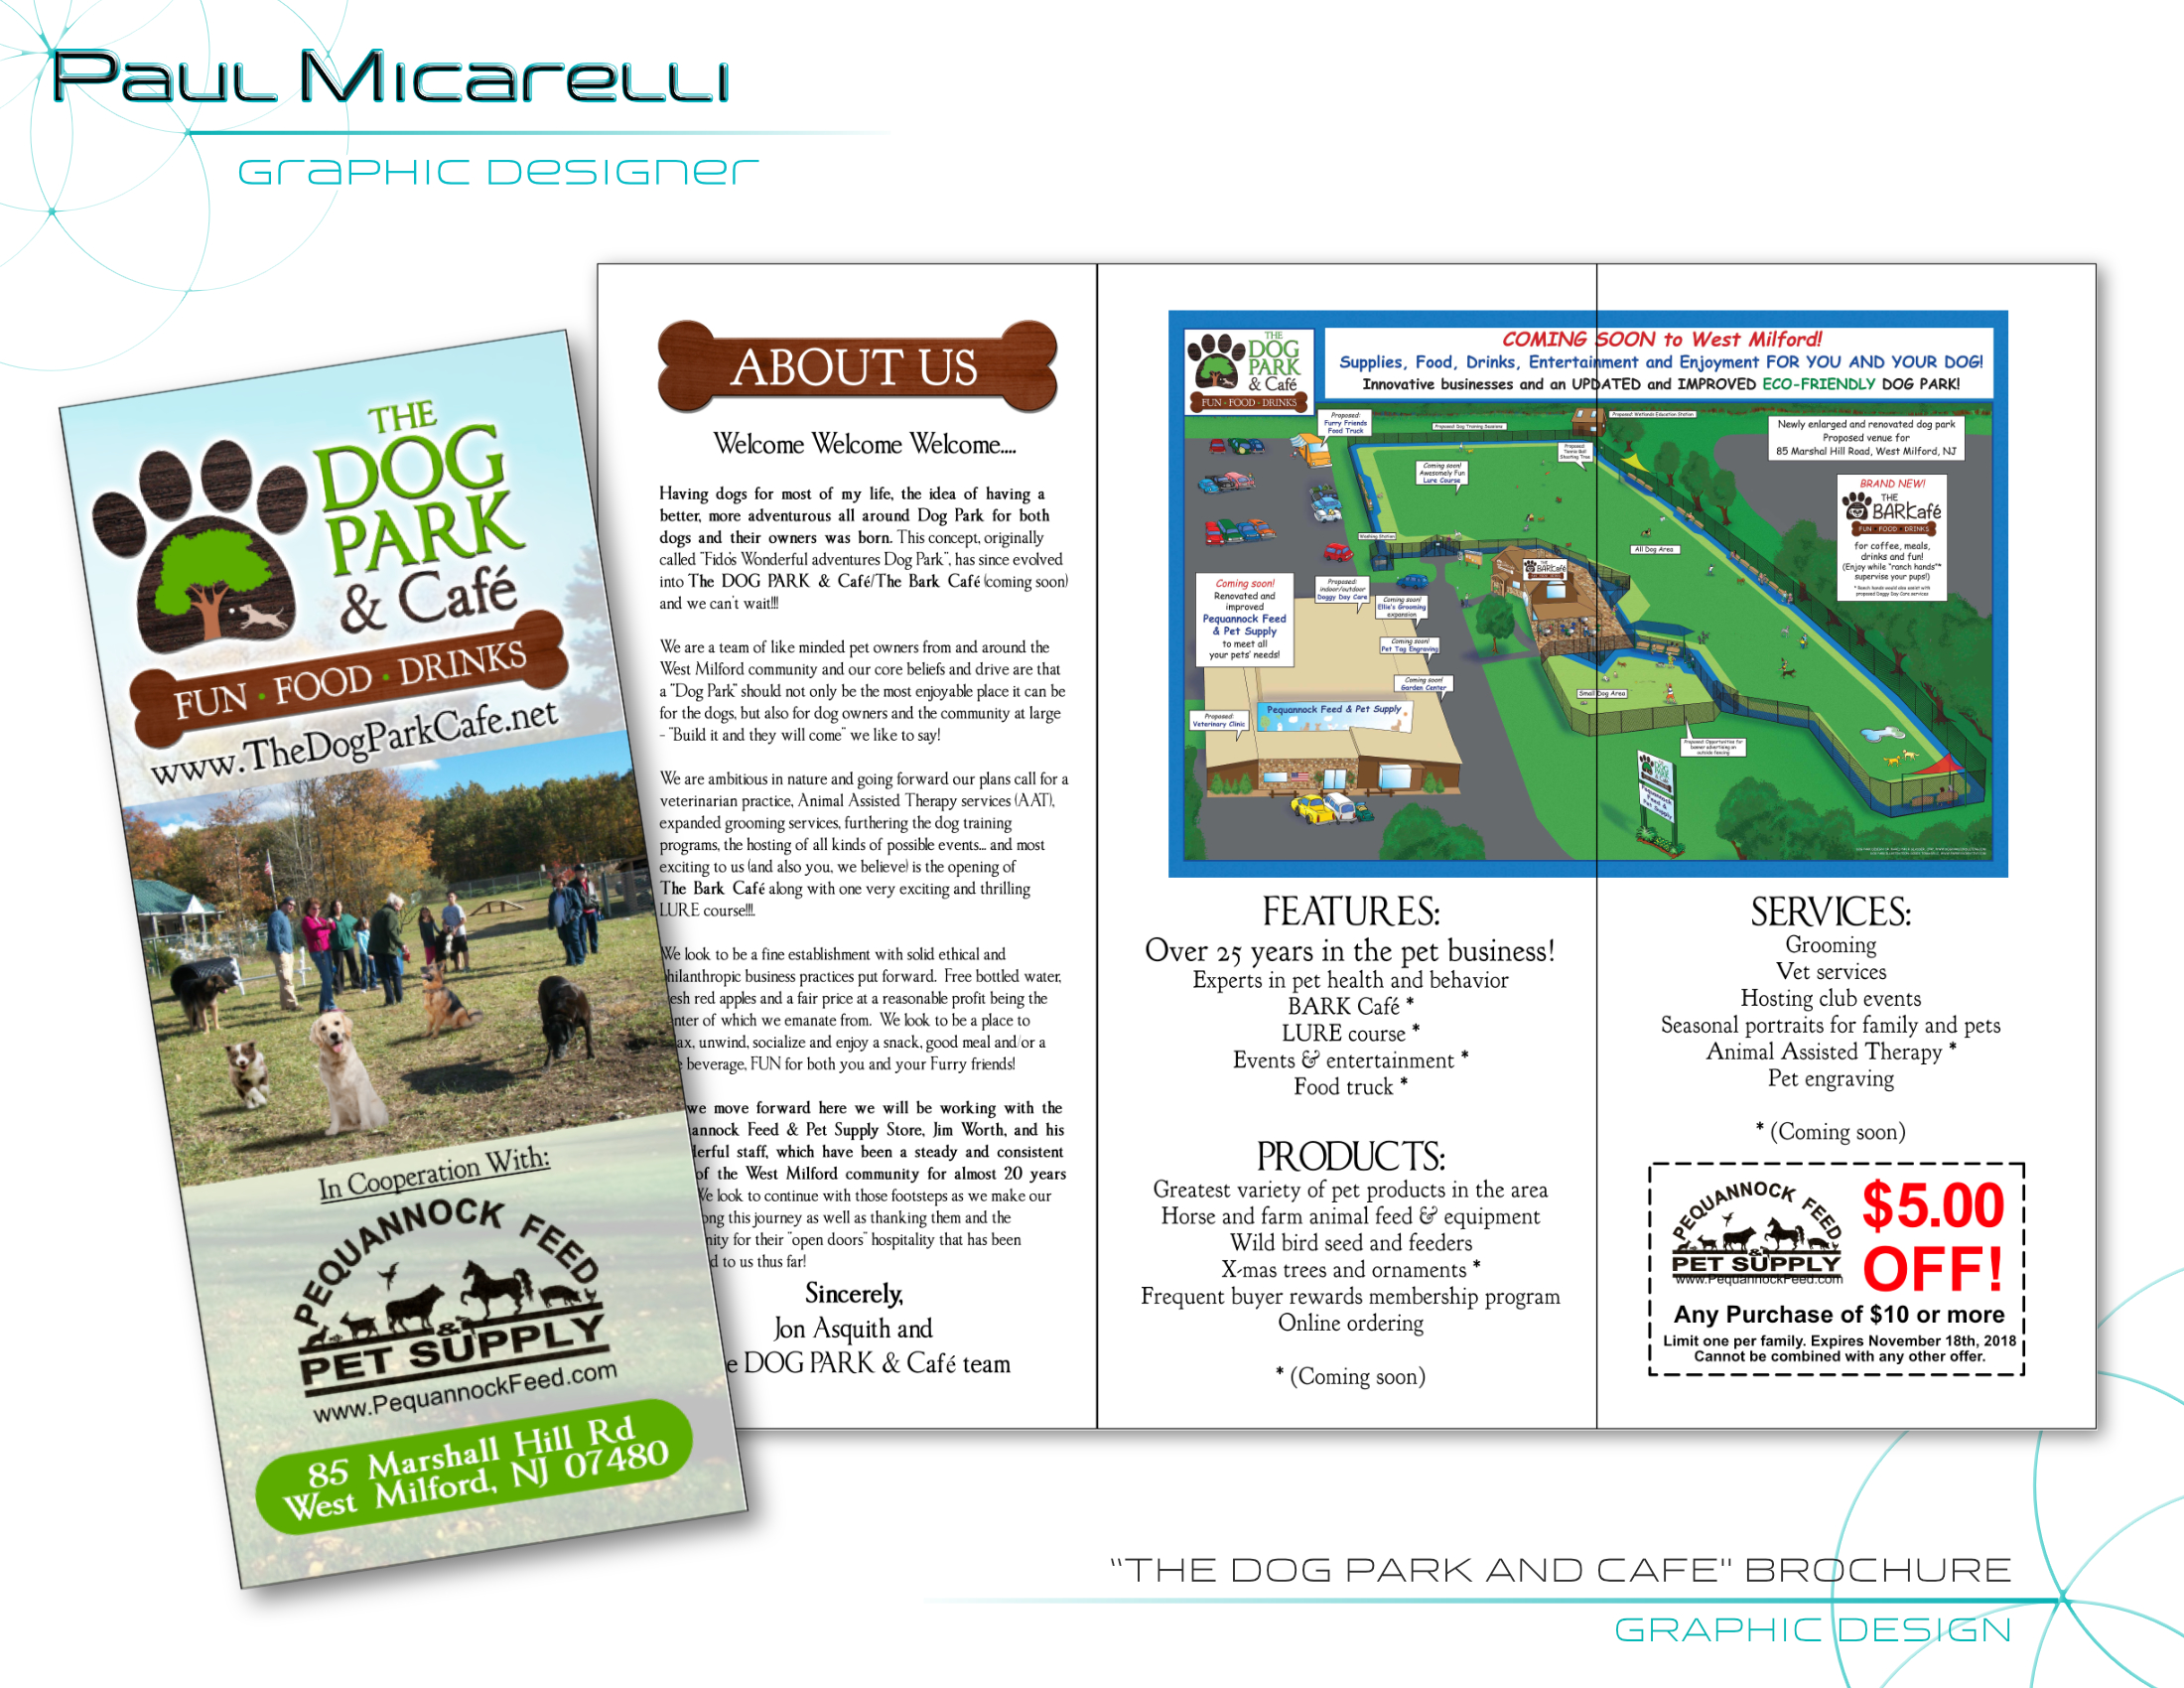 Paul-Micarelli-The Dog Park Cafe-Brochur